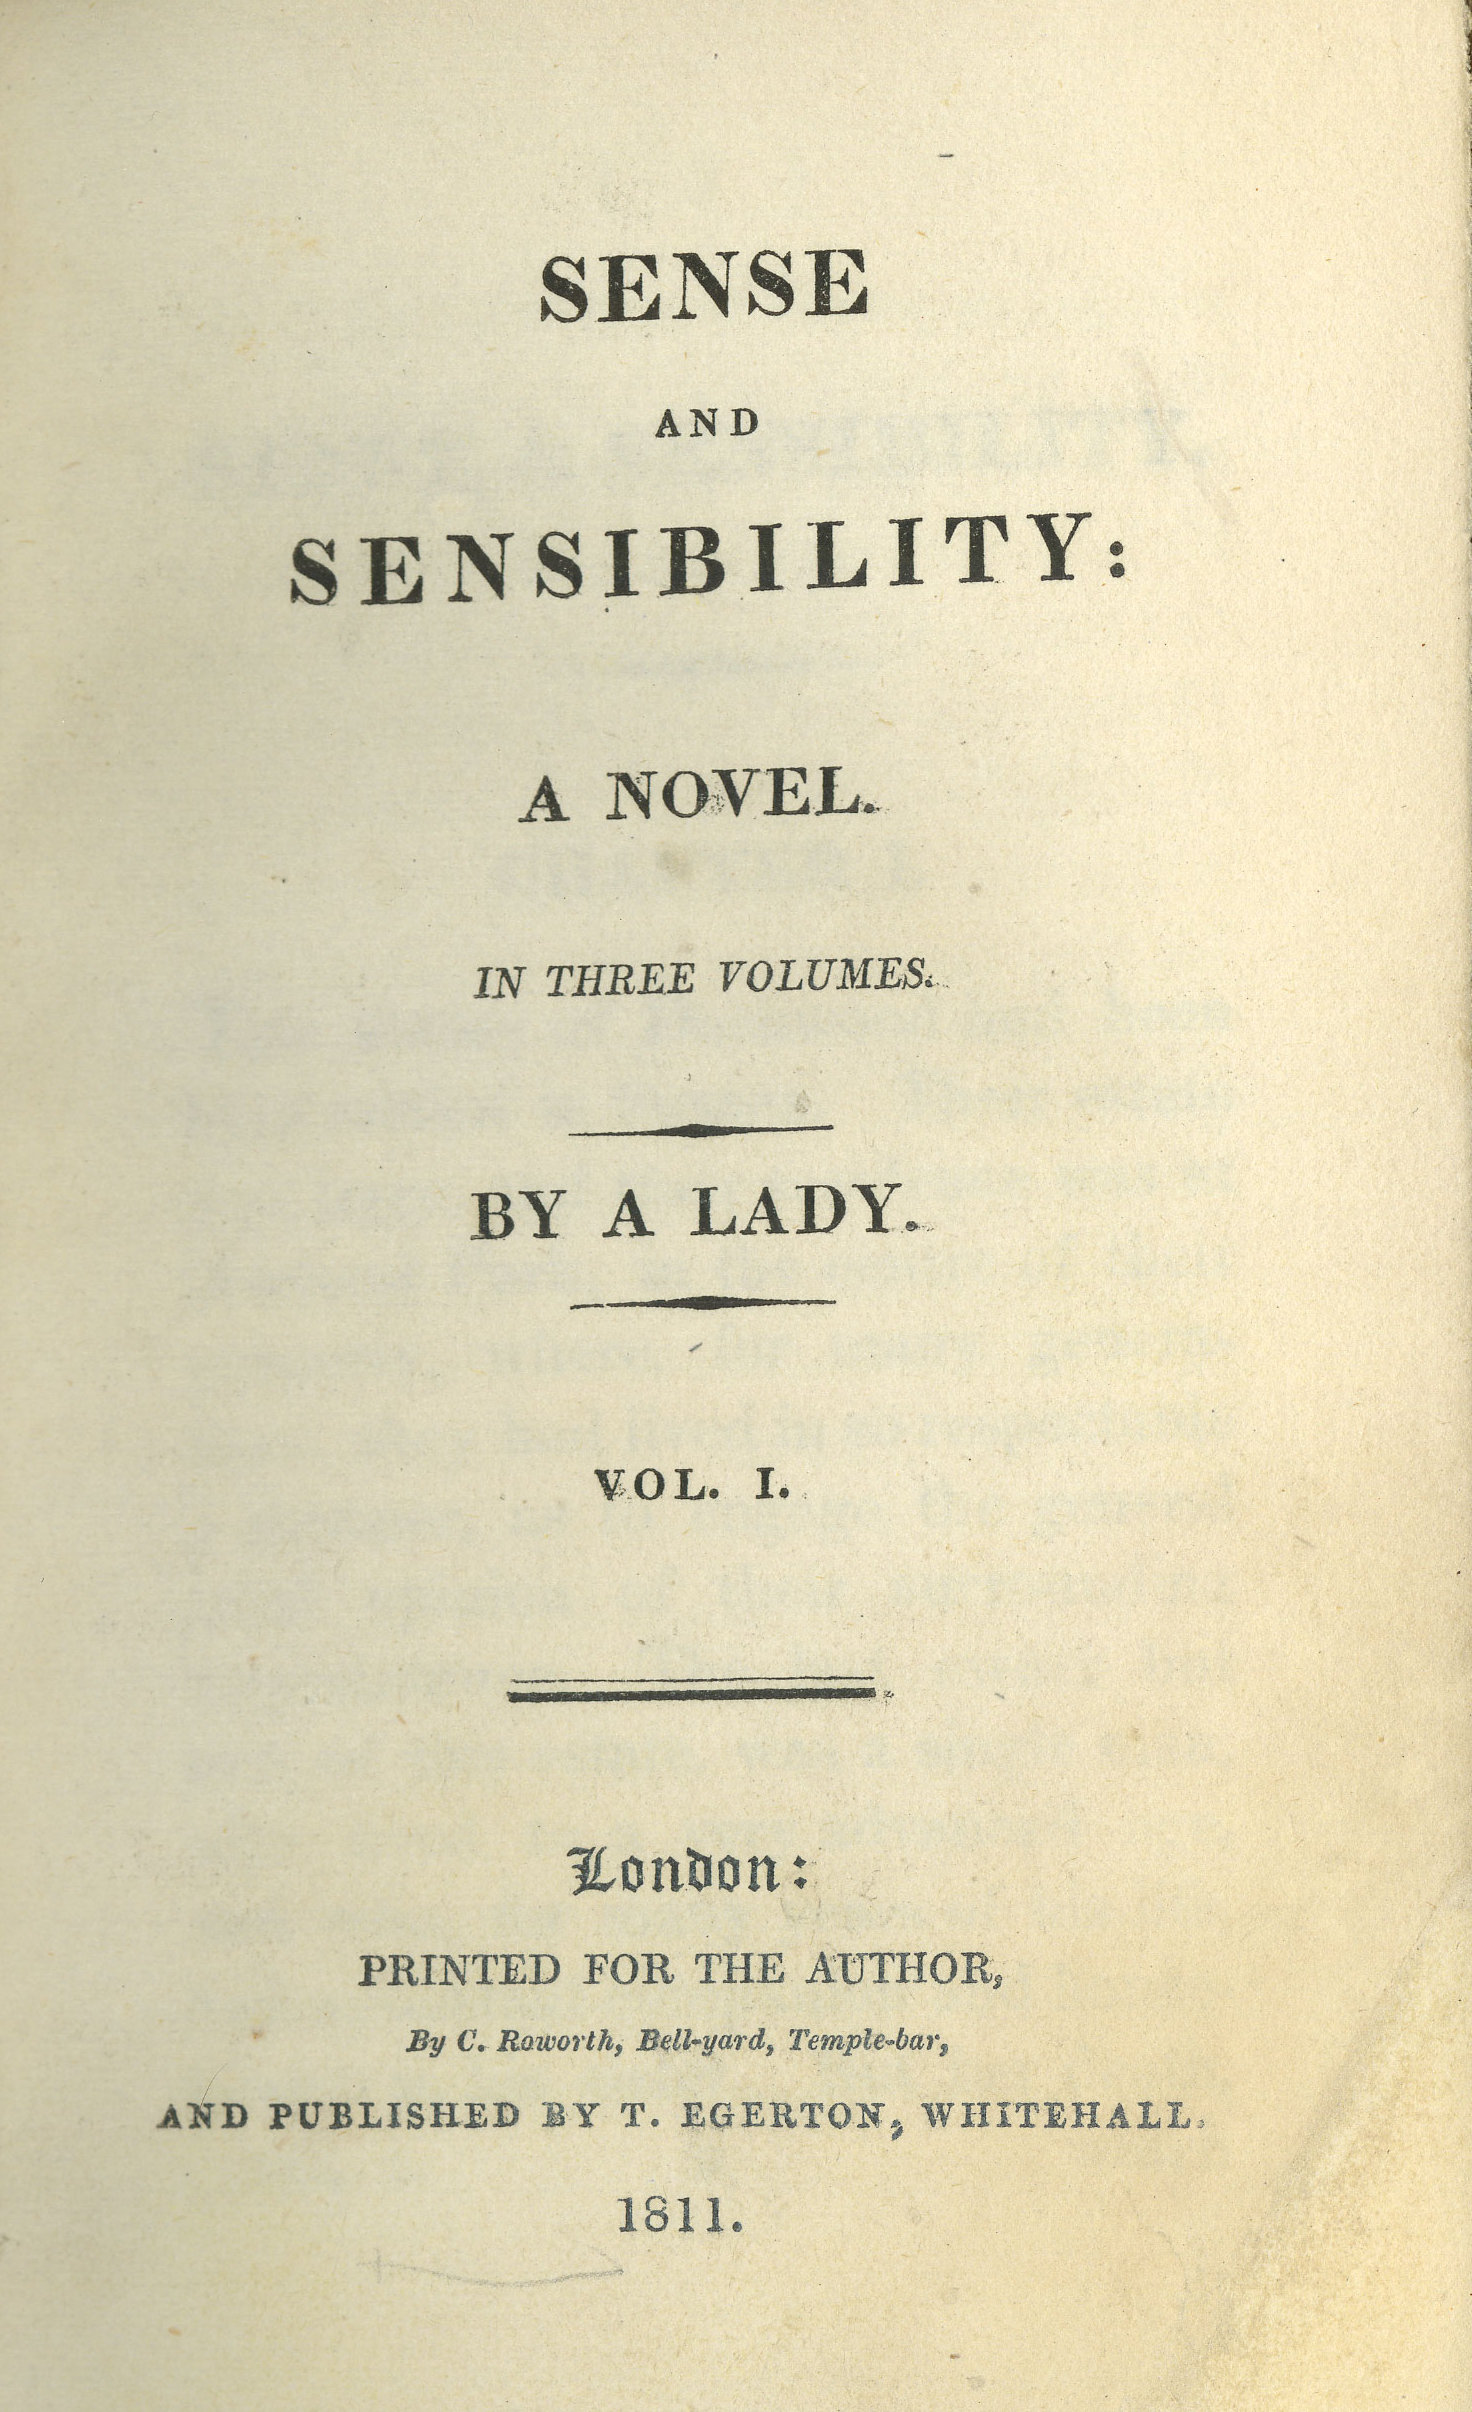 "jane austens sense and sensibility essay Jane austen – sense and sensibility class, society, and politics in the home, on an interpersonal level among the characters, are themes of outmost importance in the novel ""sense and sensibility"" by jane austen."